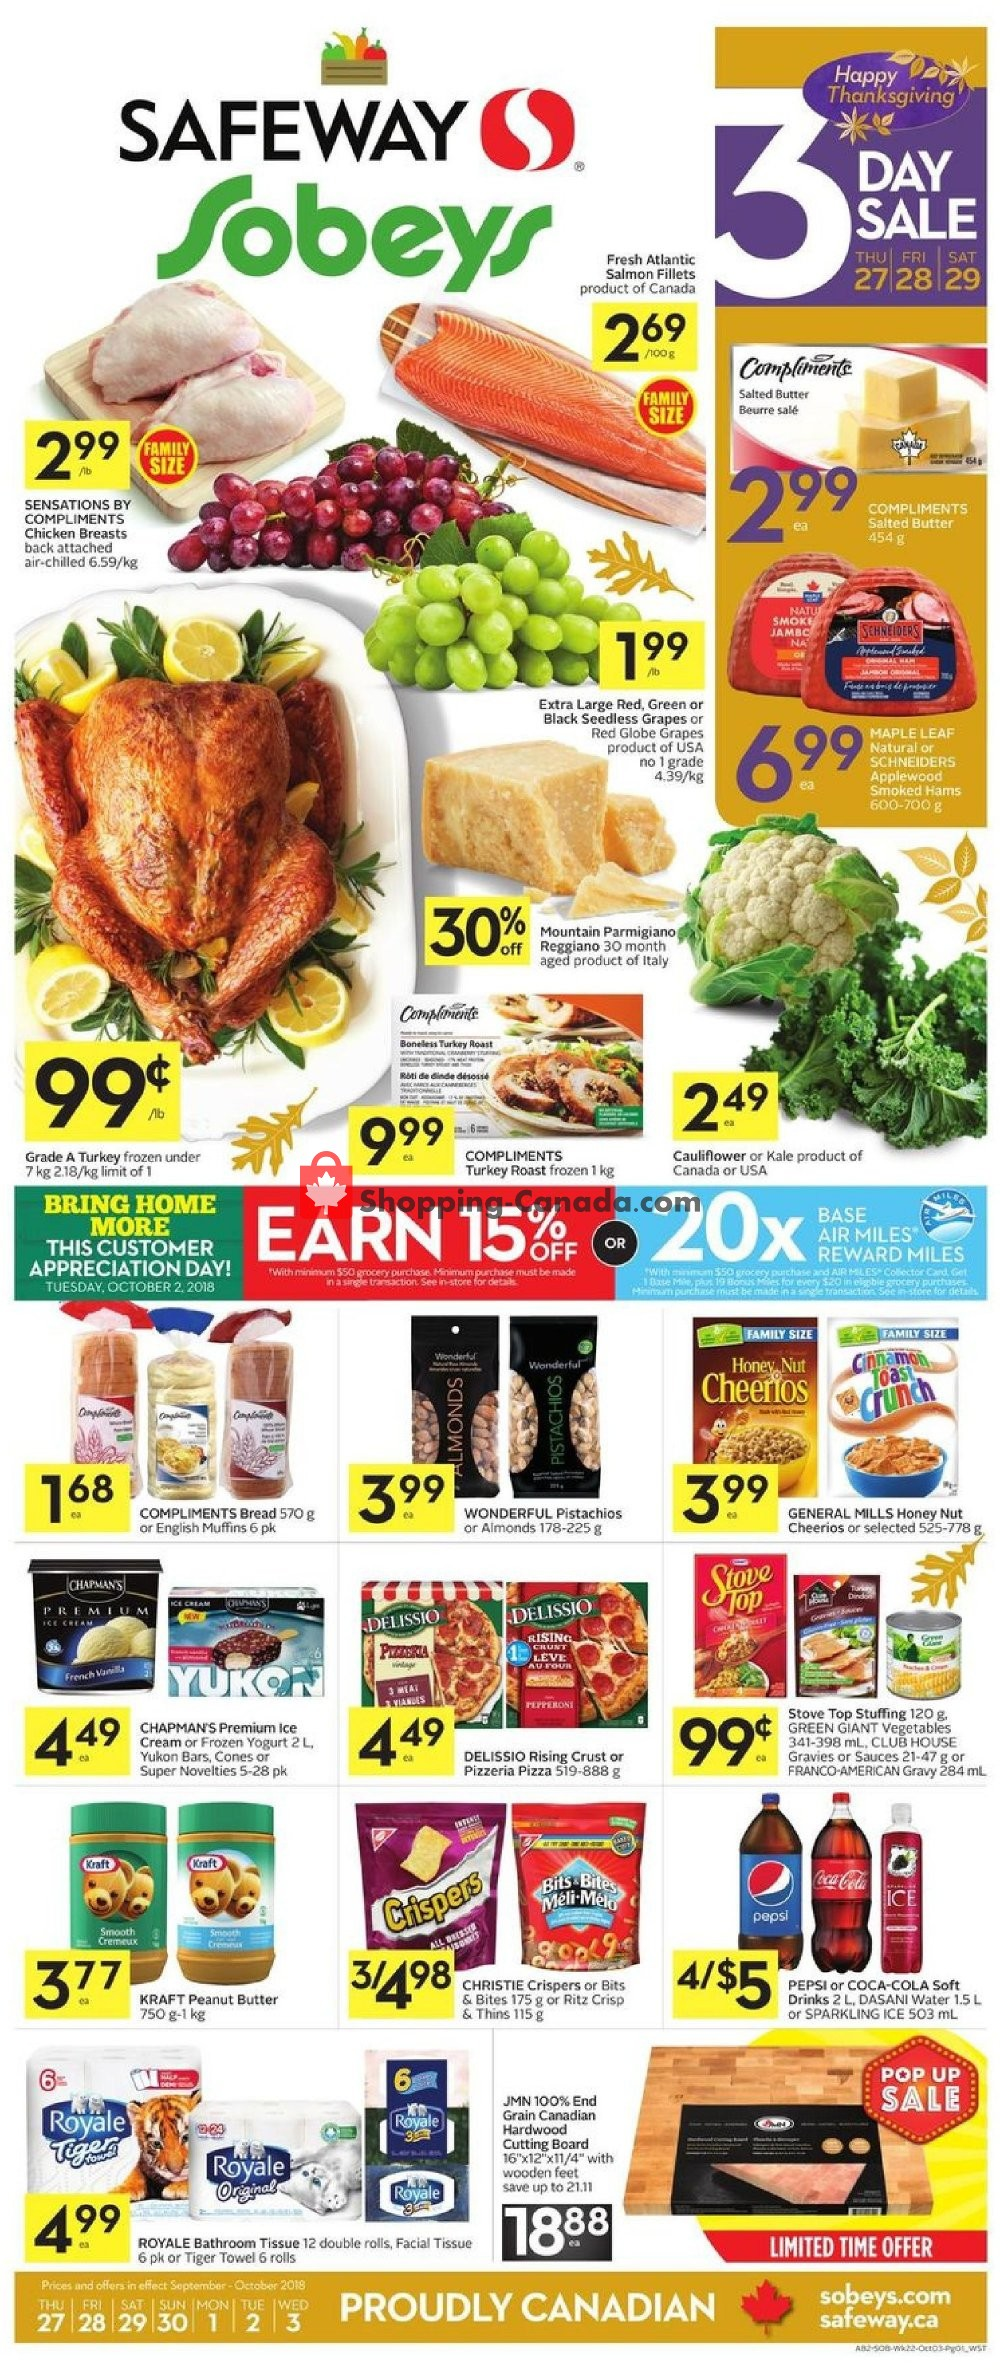 Flyer Safeway Canada - from Thursday September 27, 2018 to Wednesday October 3, 2018